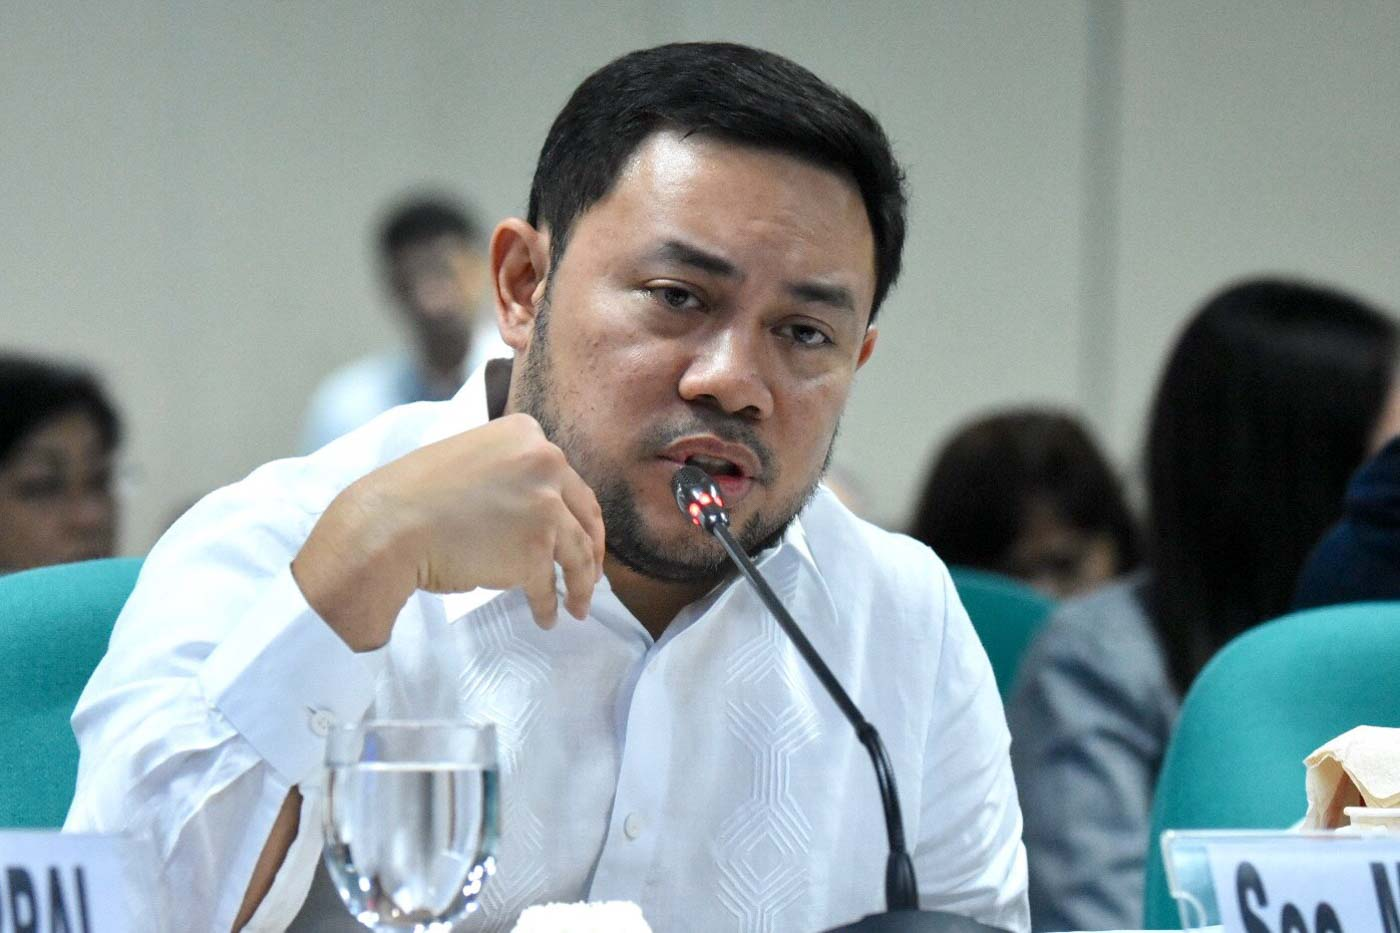 PUBLIC WORKS. DPWH Secretary Mark Villar defends the P543-billion proposed 2020 budget of his office on September 23, 2019. Photo by Angie de Silva/Rappler